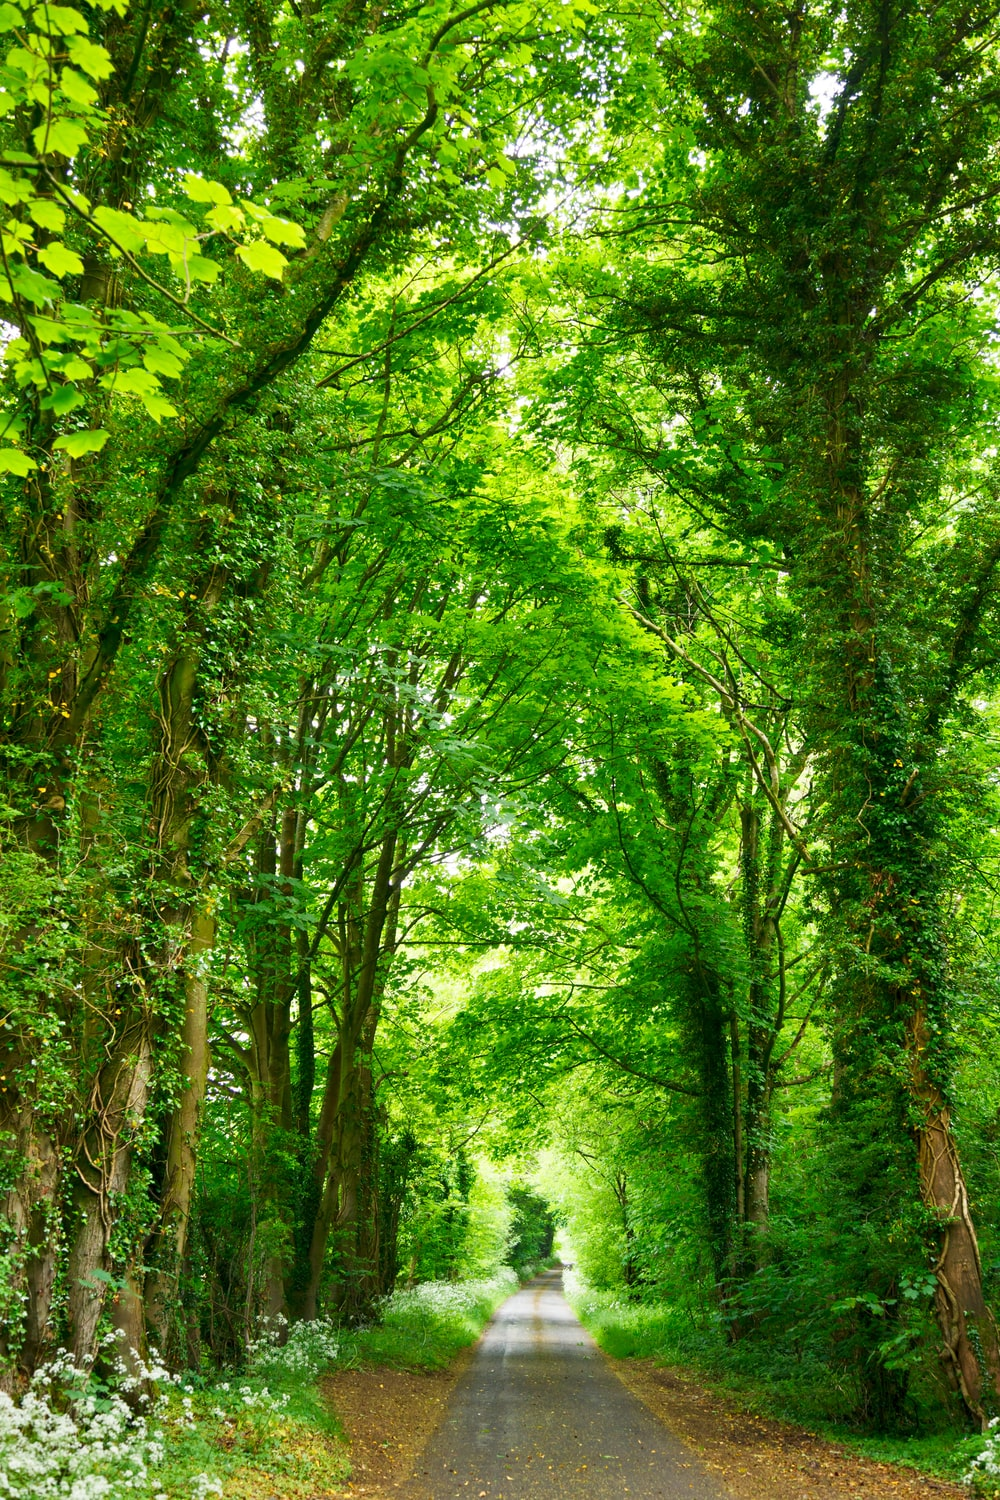 tree lined alley photo by studio dekorasyon t t on unsplash